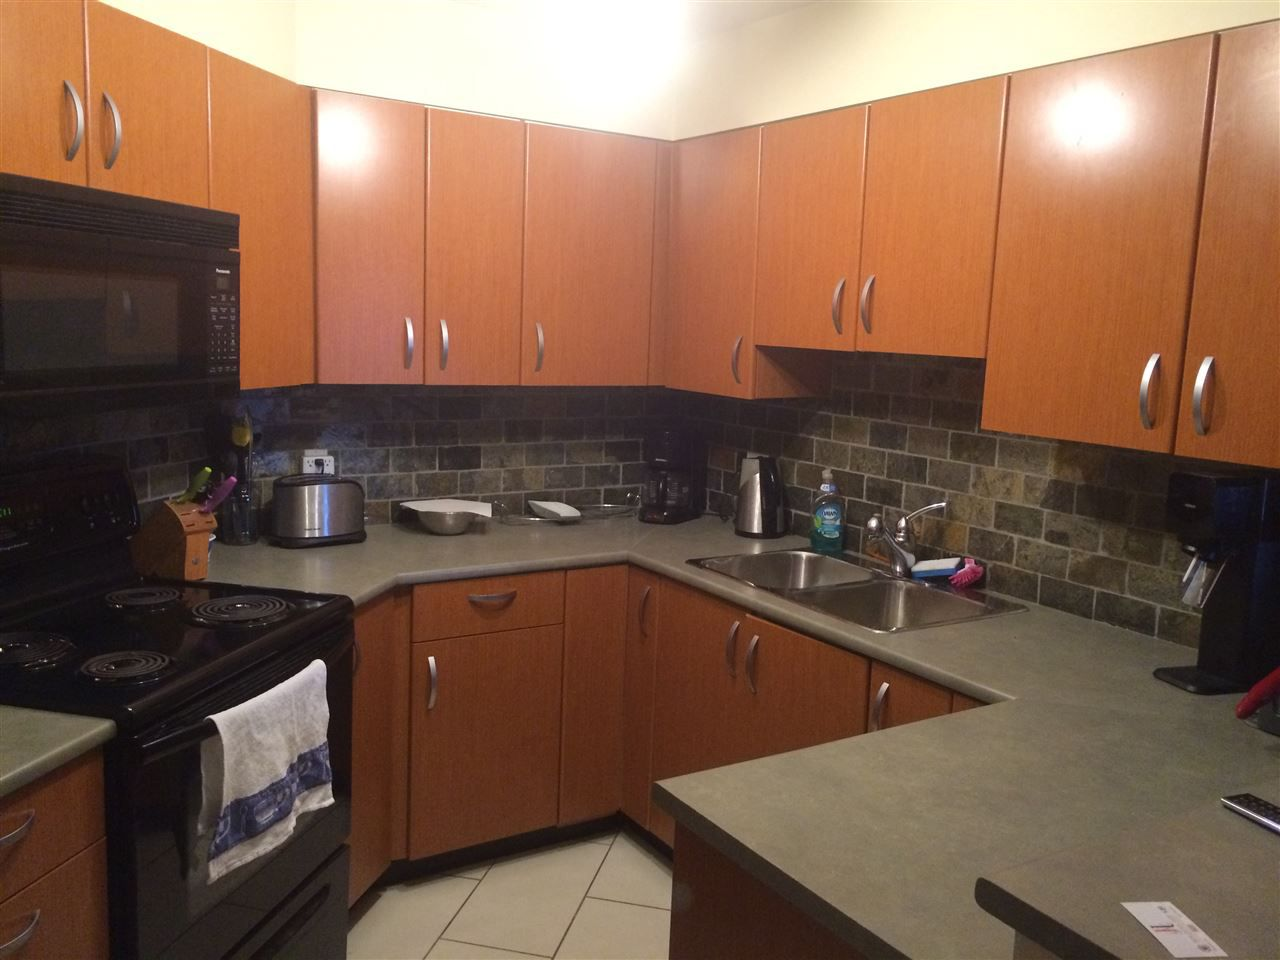 """Main Photo: 414 20750 DUNCAN Way in Langley: Langley City Condo for sale in """"Fairfield Lane"""" : MLS®# R2048094"""